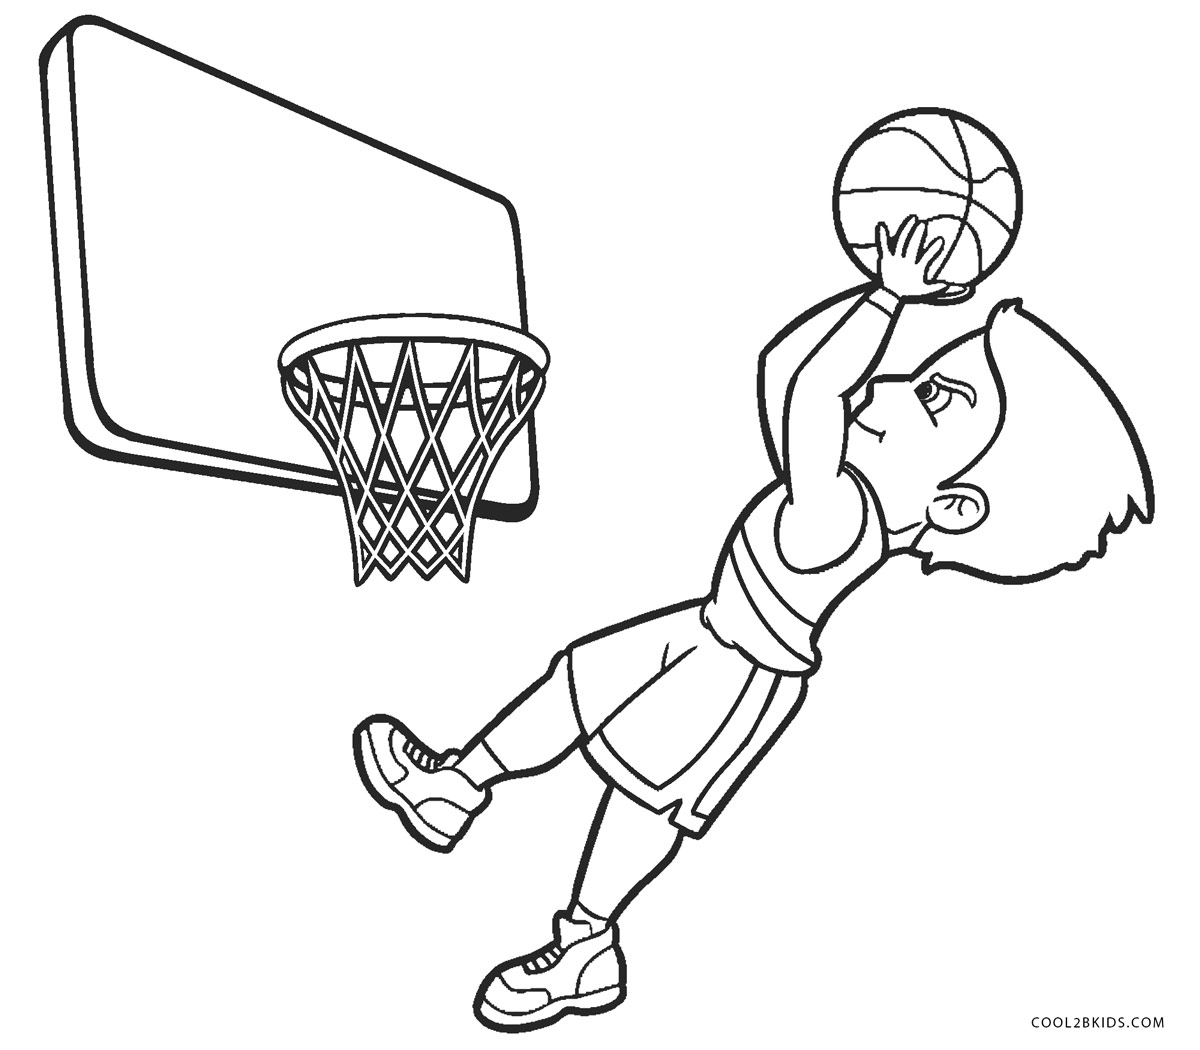 Basketball Hoop Coloring Page - Basketball Goal Coloring Sheet ... | 1050x1200